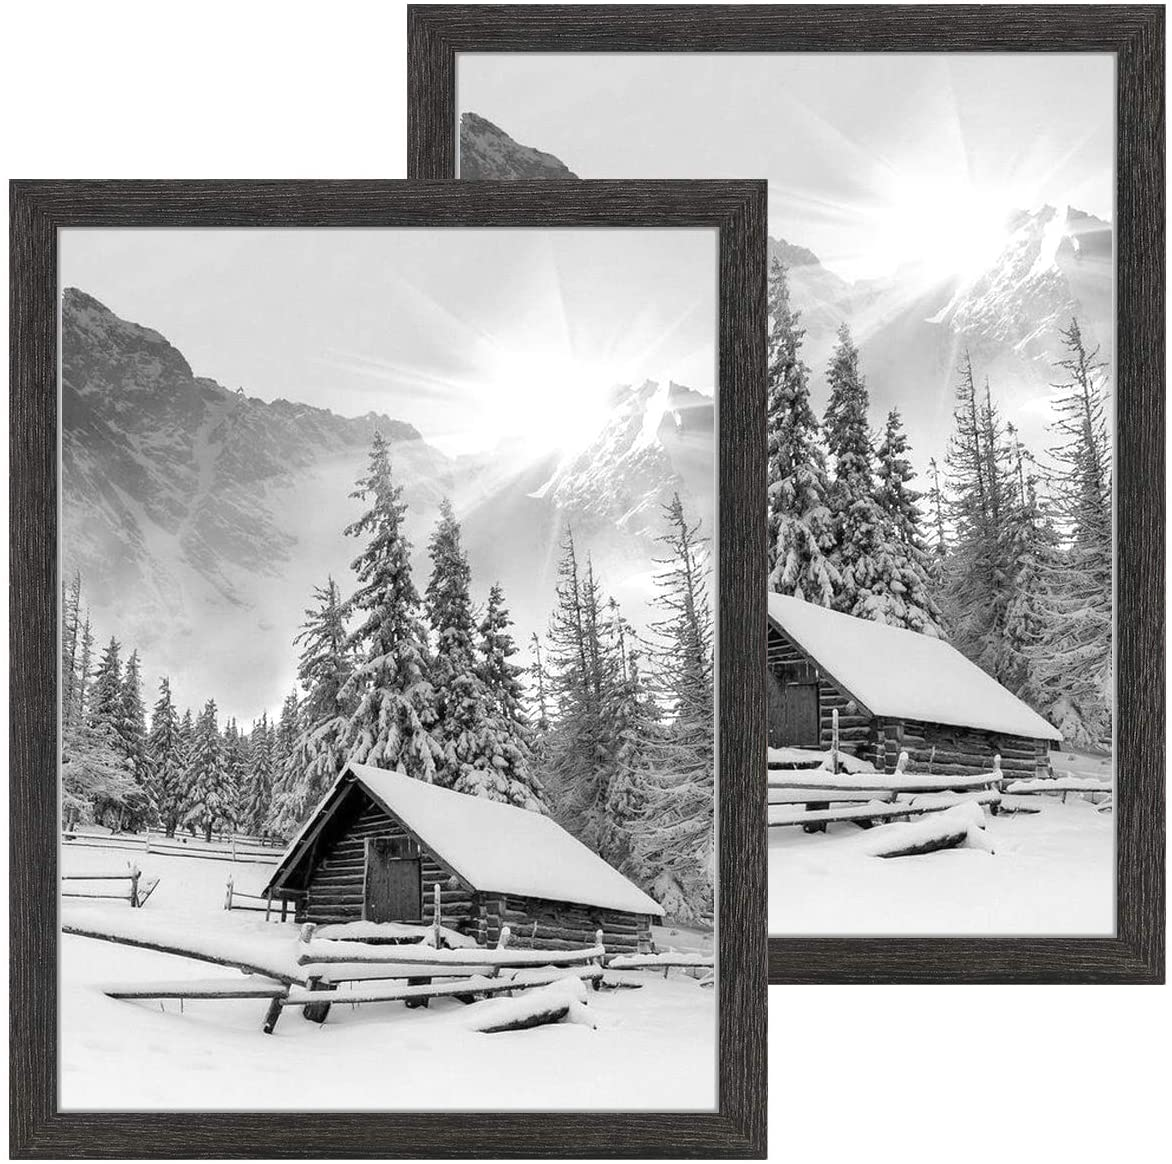 NUOLAN 18x24 Picture Frame Weathered Black Wood Pattern, Wall Hanging Poster Frames with Plexiglass Front, Set of 2 (NL-PF18X24-DG)